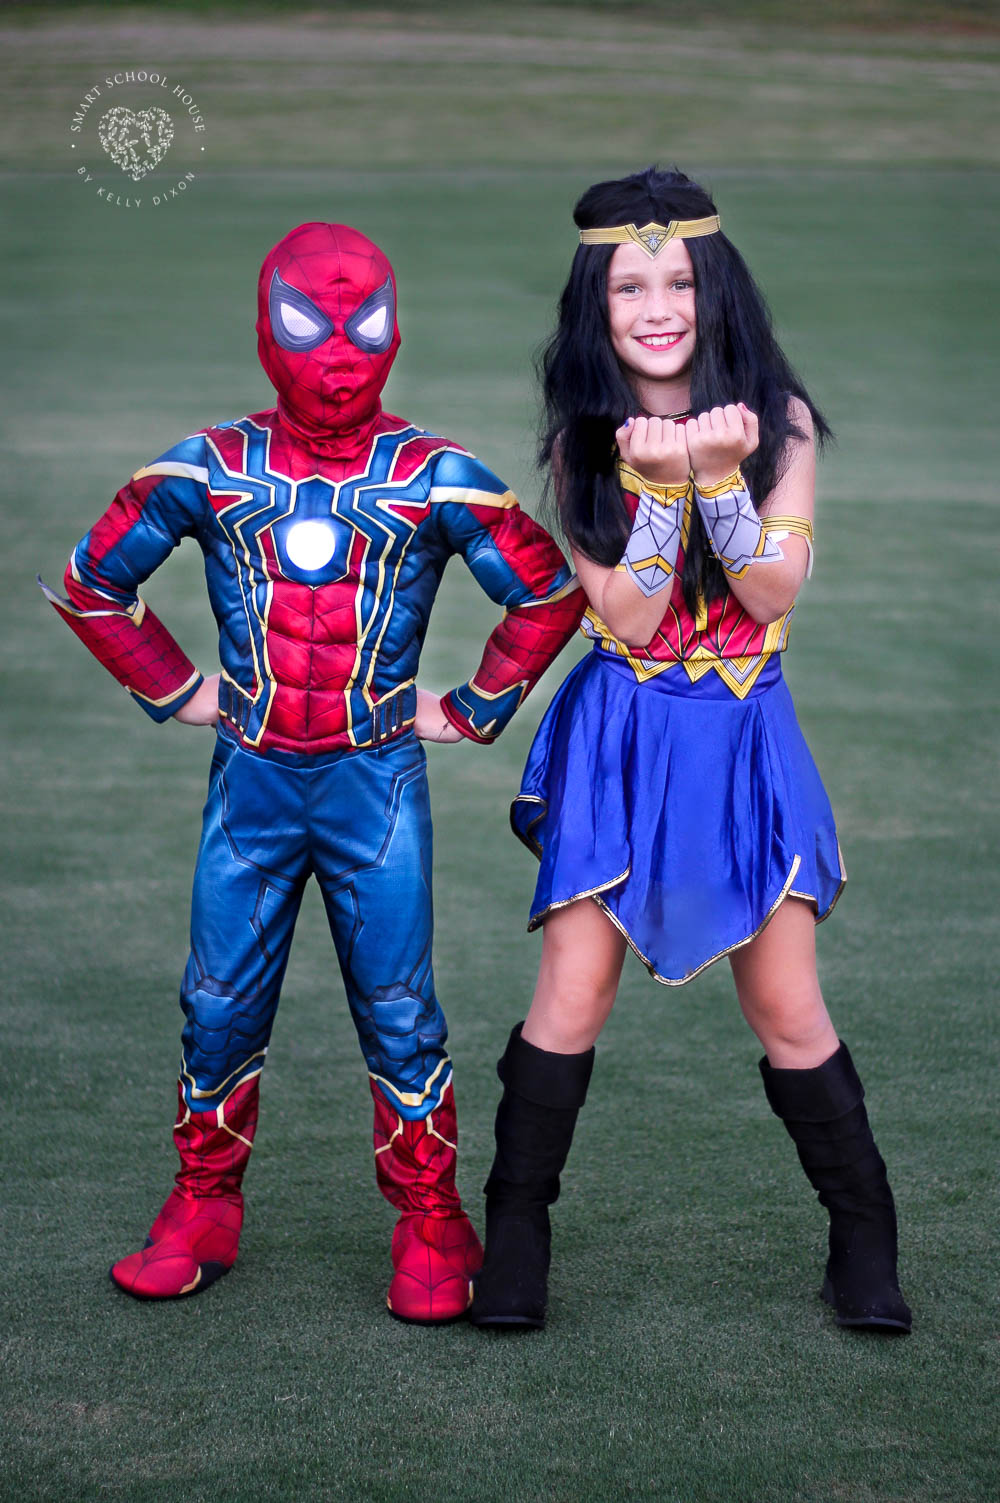 Wonder Woman and Iron Spider kids costumes for siblings